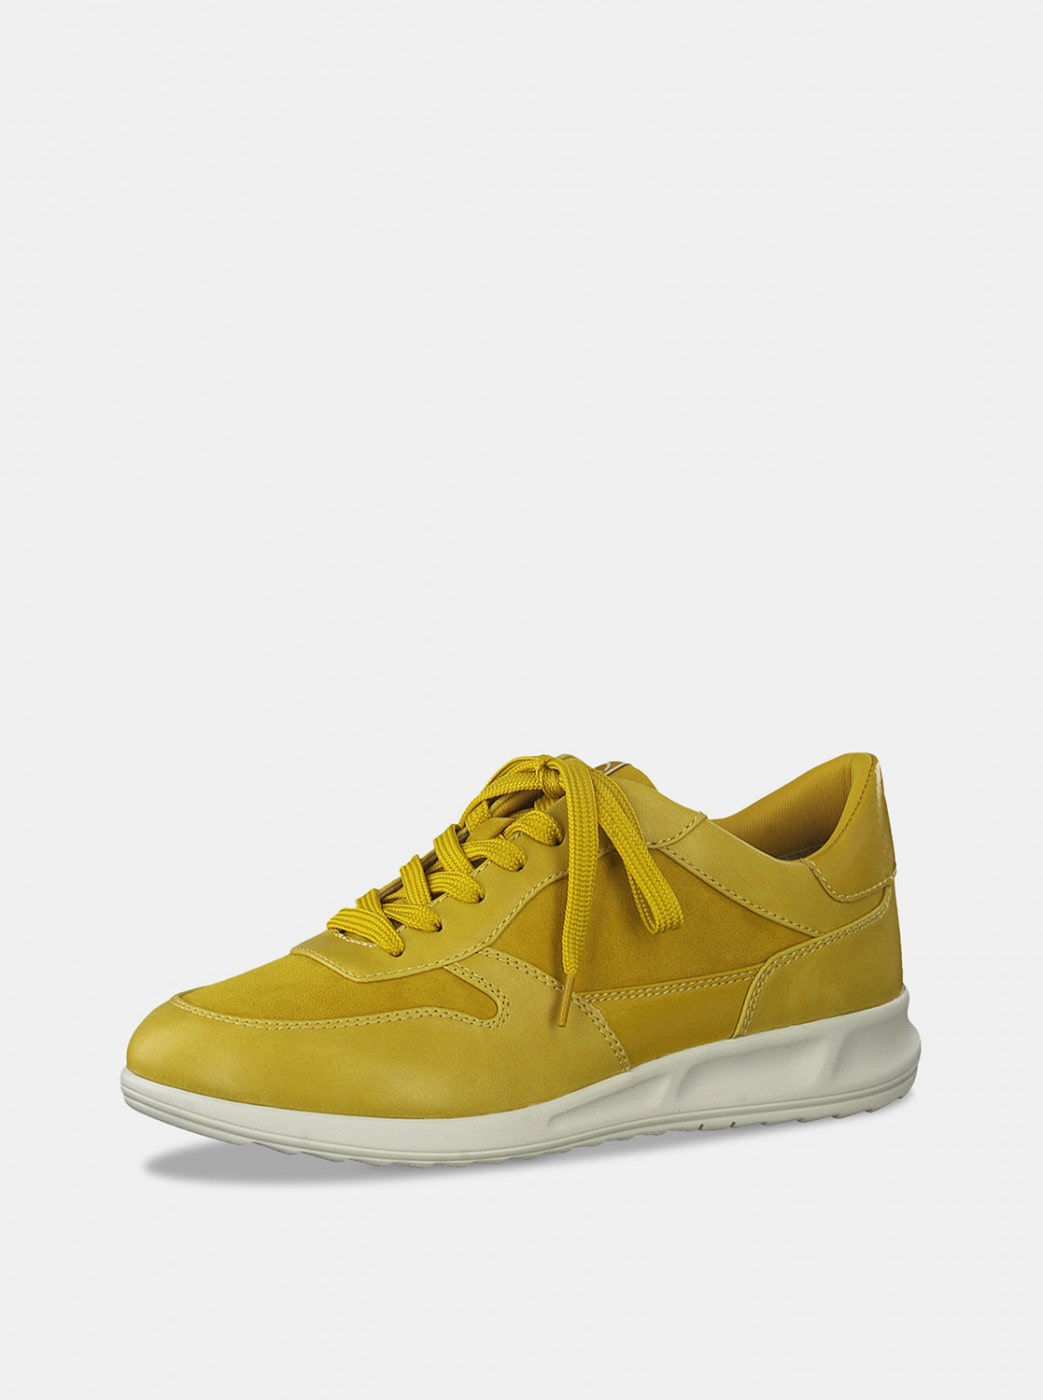 Yellow sneakers with suede tamaris details